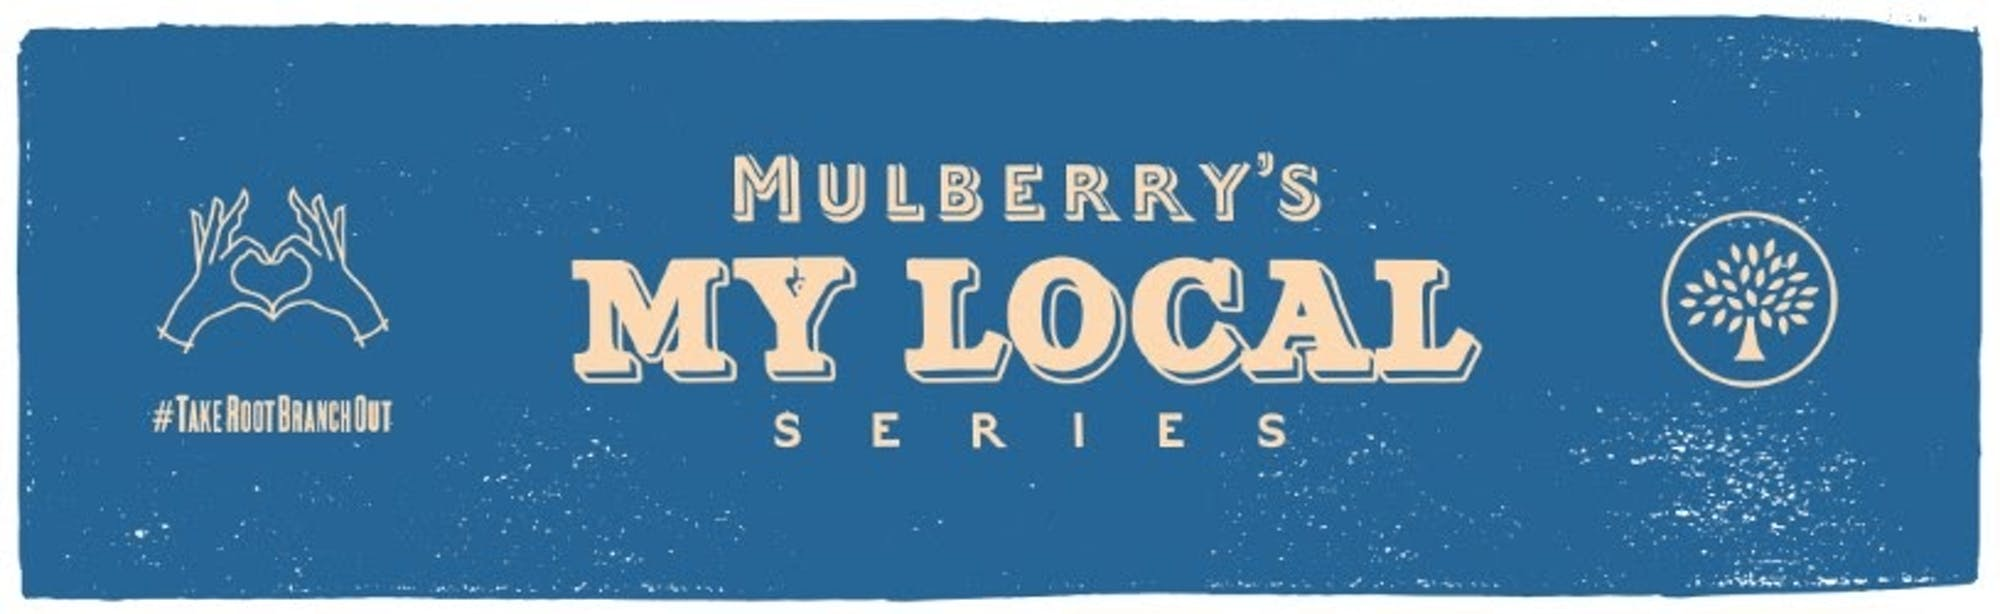 The Walpole Daily Practice  Music at Mulberry's 'My Local' series